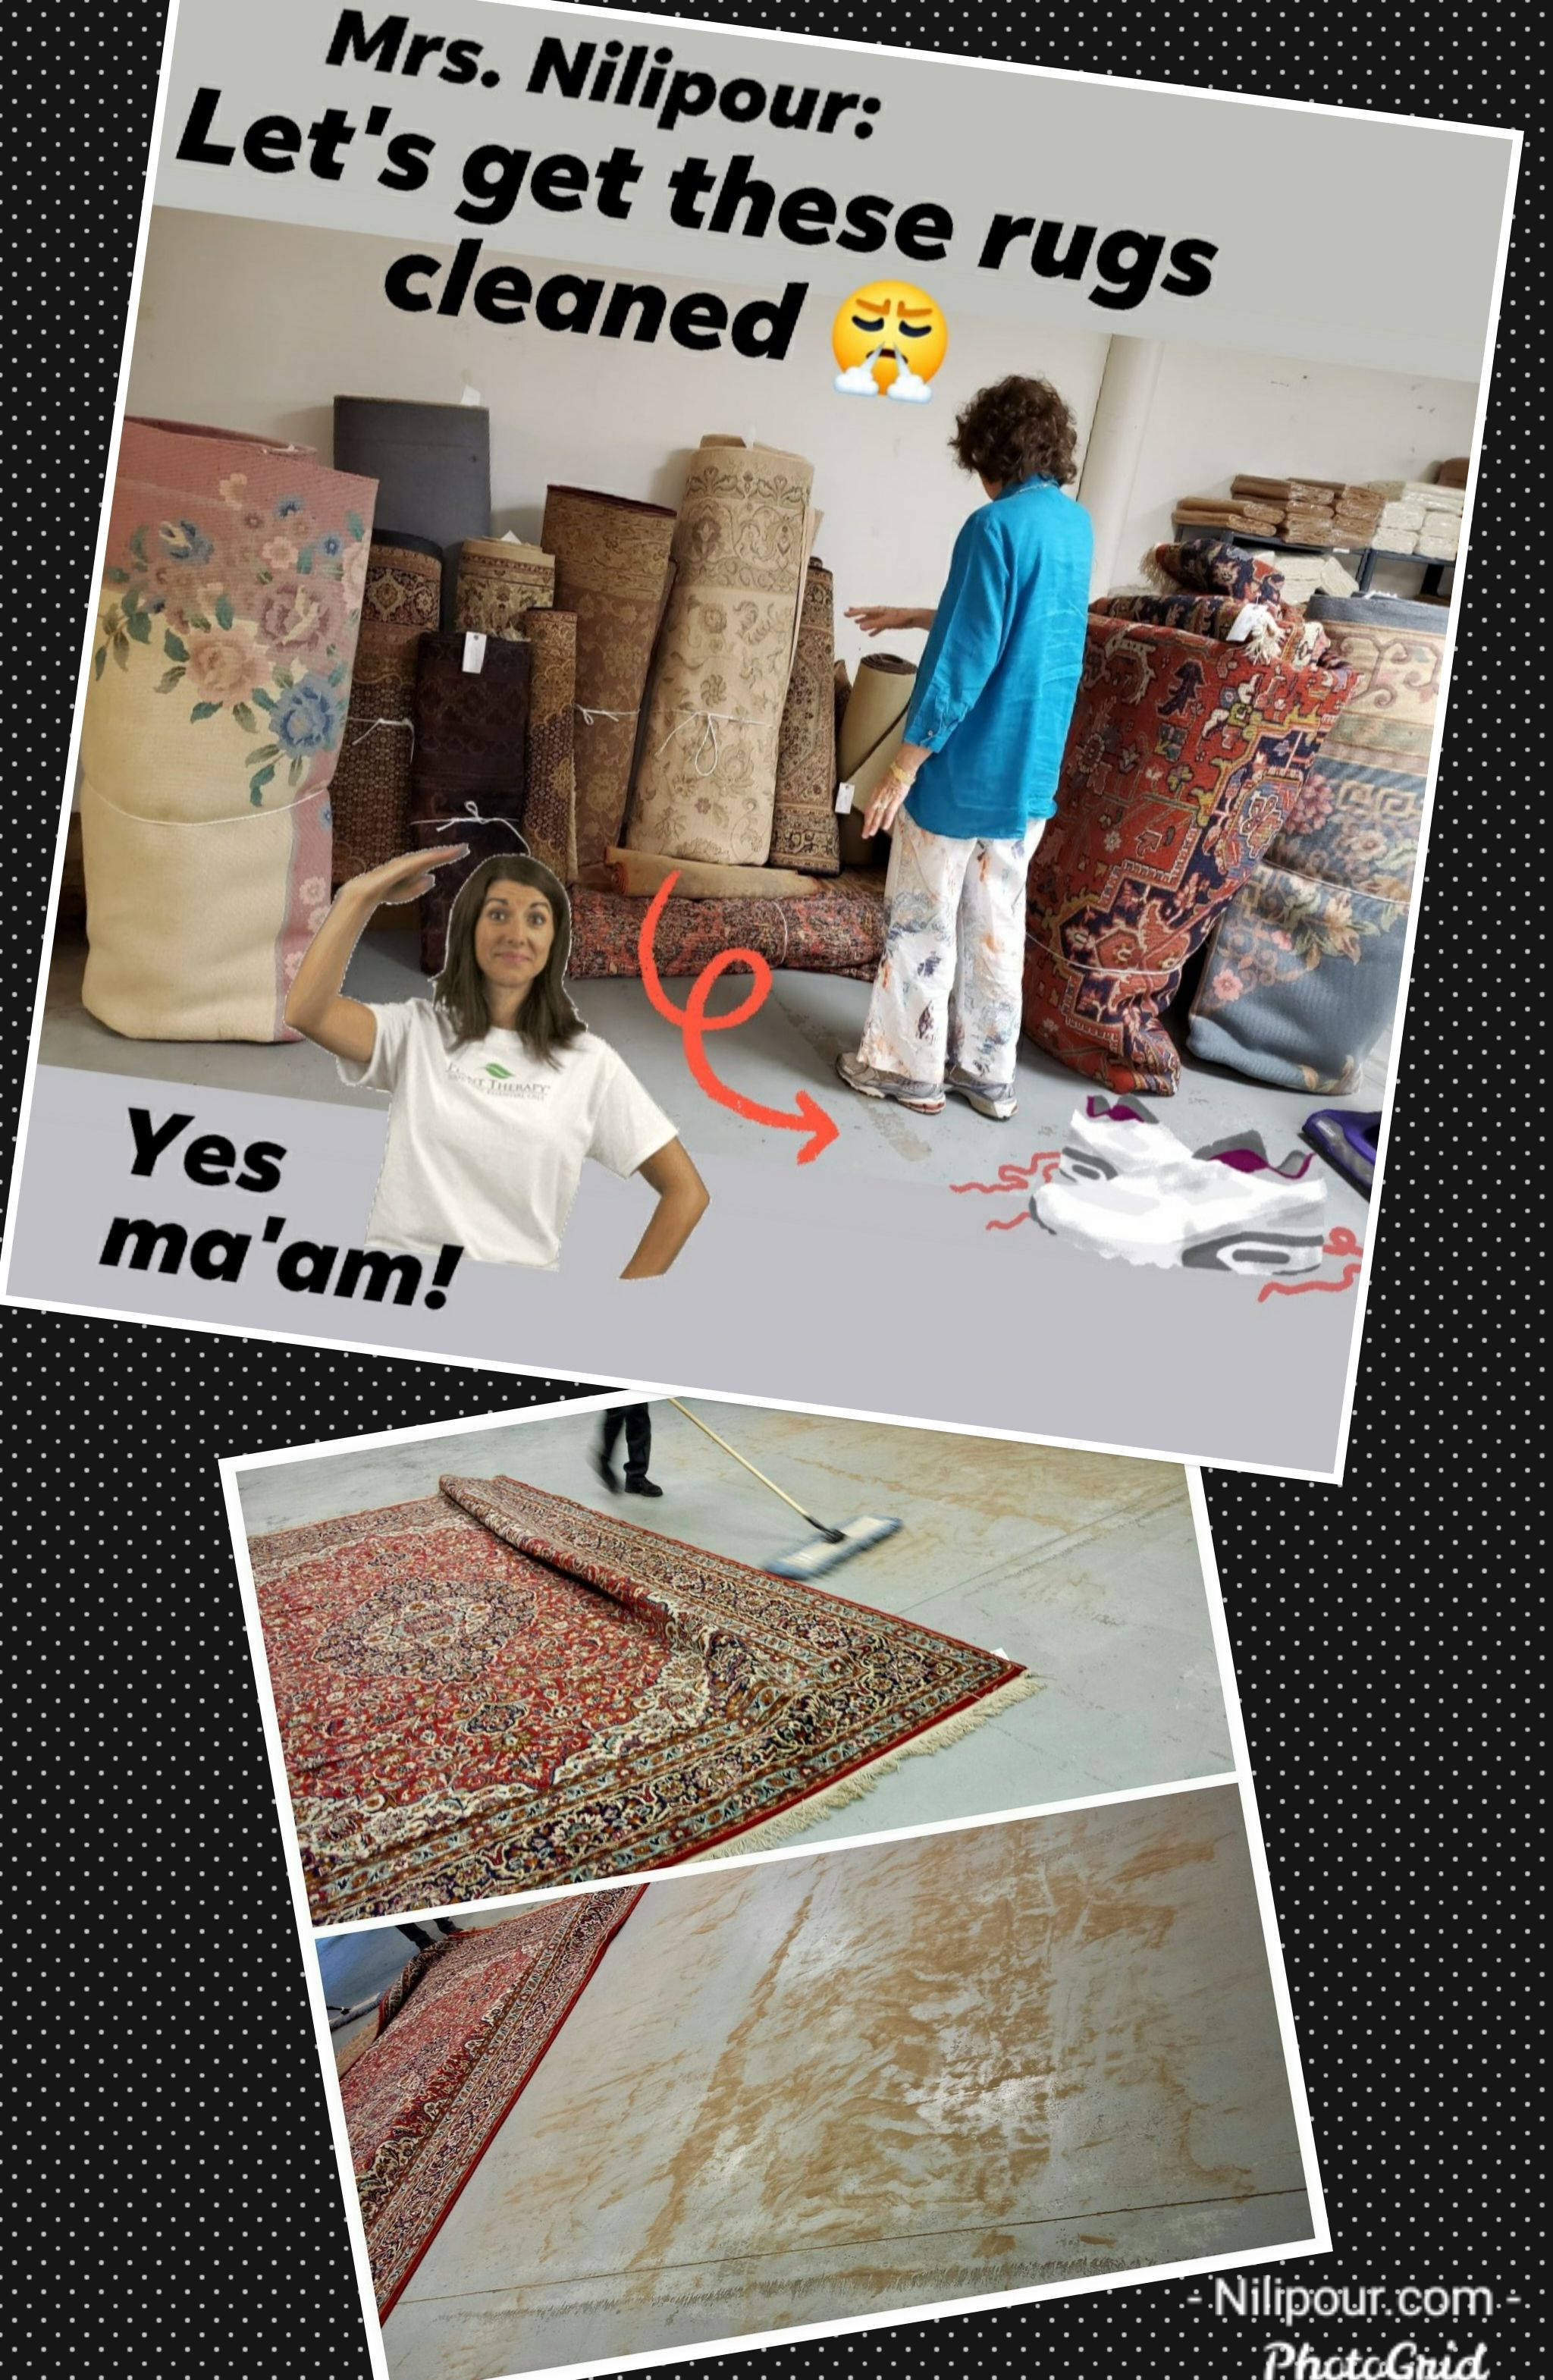 Have you seen what comes out of your rugs?  We are here to CLEAN and DISINFECT your area rugs and runners!   Don't neglect your investment...and don't neglect your health! Maintaining cleanliness is the essential part of healthy living.  #NilipourOrientalRugs #familybusiness #since1972 #rugcleaning #arearugcleaning #orientalrugcleaning #rugdisinfecting #rugrestoration #orientalrugrestoration #arearugrestoration #yourhealthmatters #cleanlinessisGodliness